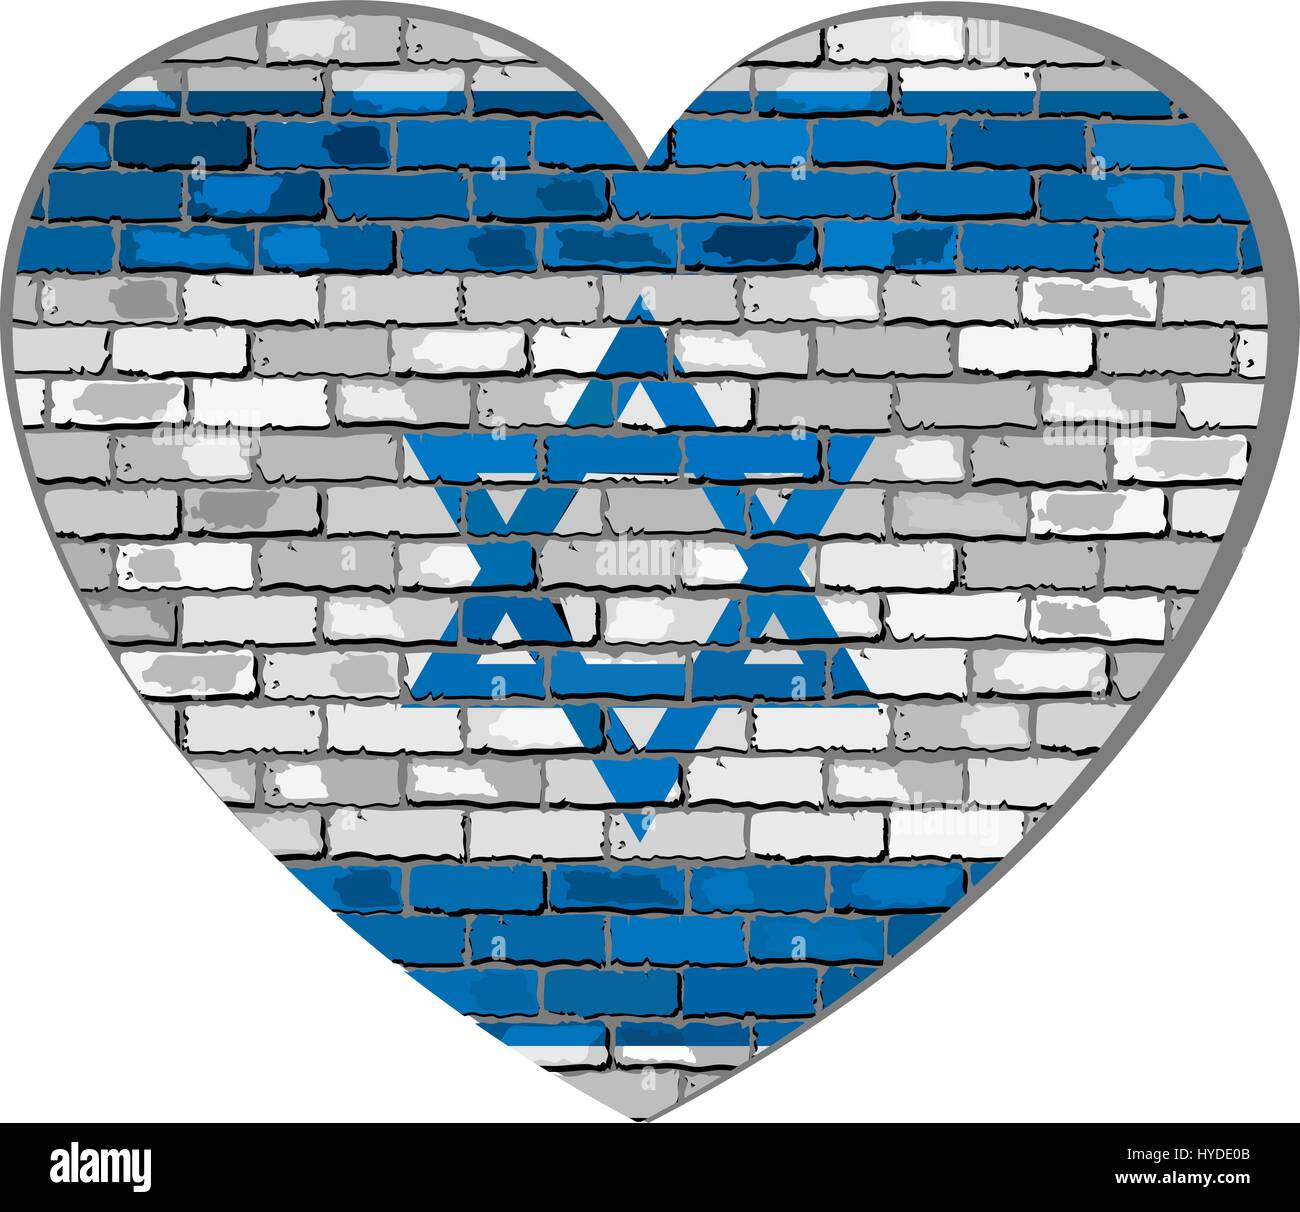 Flag of Israel on a brick wall in heart shape - Illustration, Israeli flag in brick style,  Abstract grunge Israel - Stock Vector